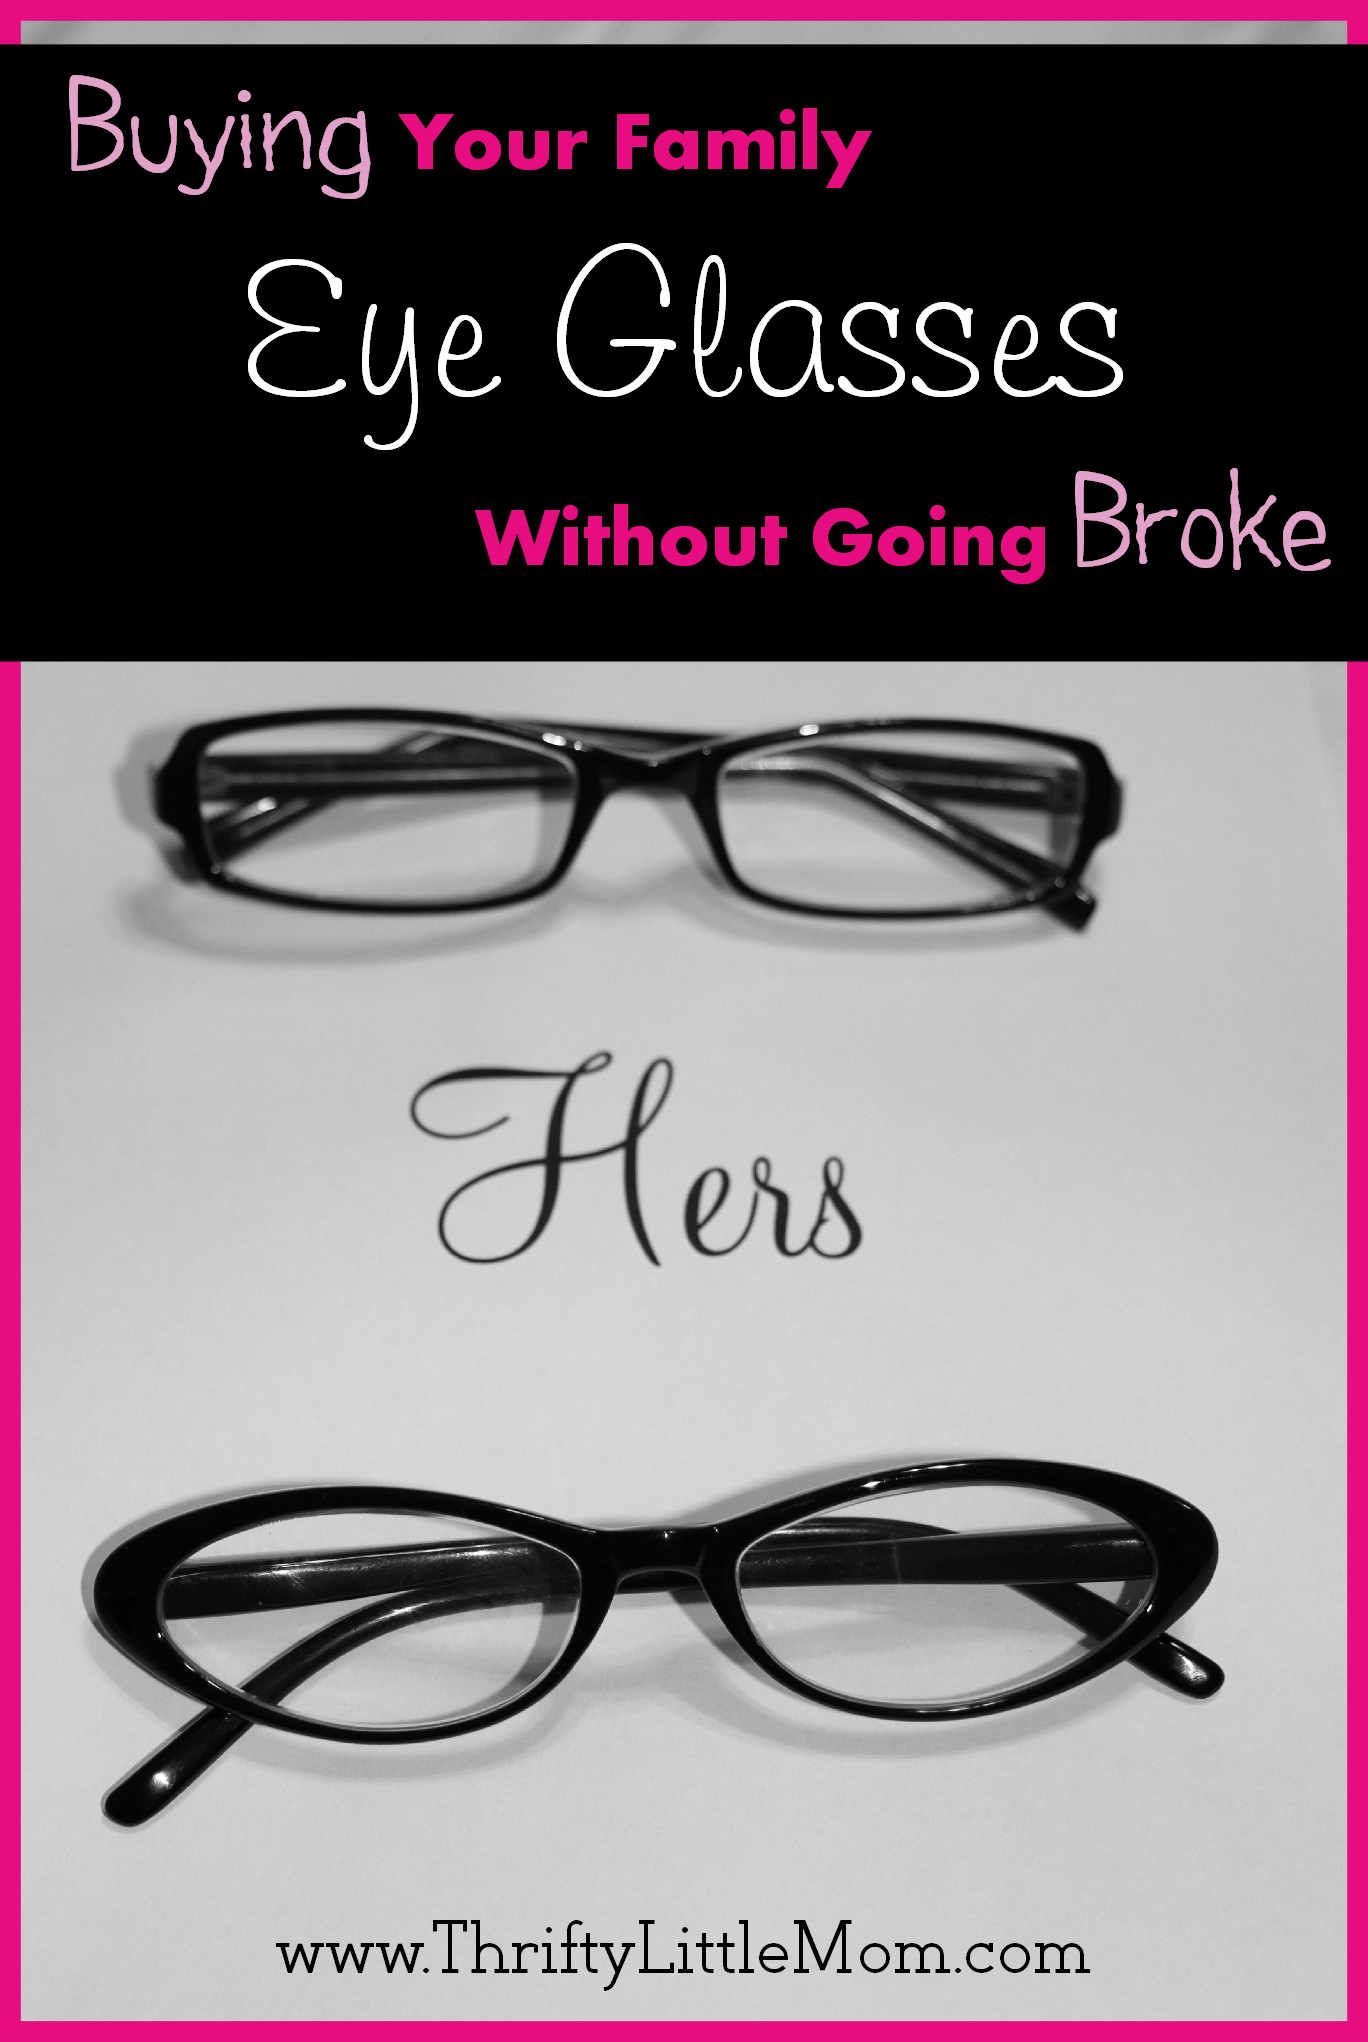 Buying Your Family Eyeglasses Without Going Broke Show